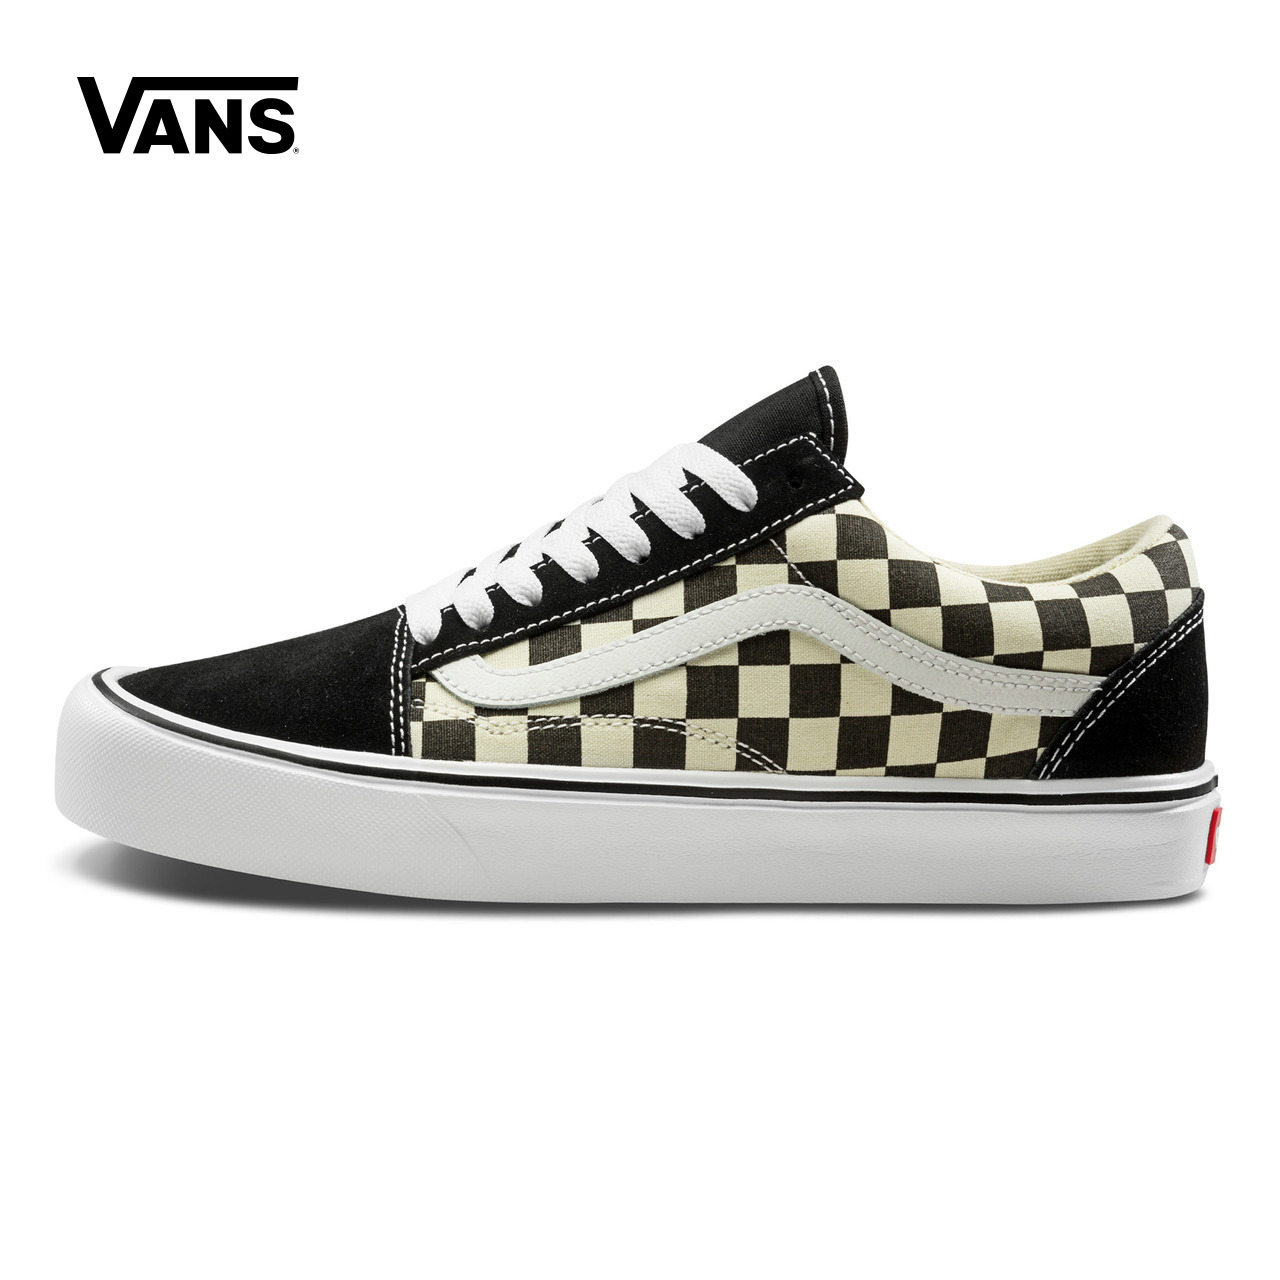 Original New Arrival Vans Men's & Women's Classic Old Skool Lite Skateboarding Shoes Sport Outdoor Sneakers Canvas VN0A2Z5W5GX original new arrival van classic unisex skateboarding shoes old skool sport outdoor canvas comfortable sneakers vn000d3hw00